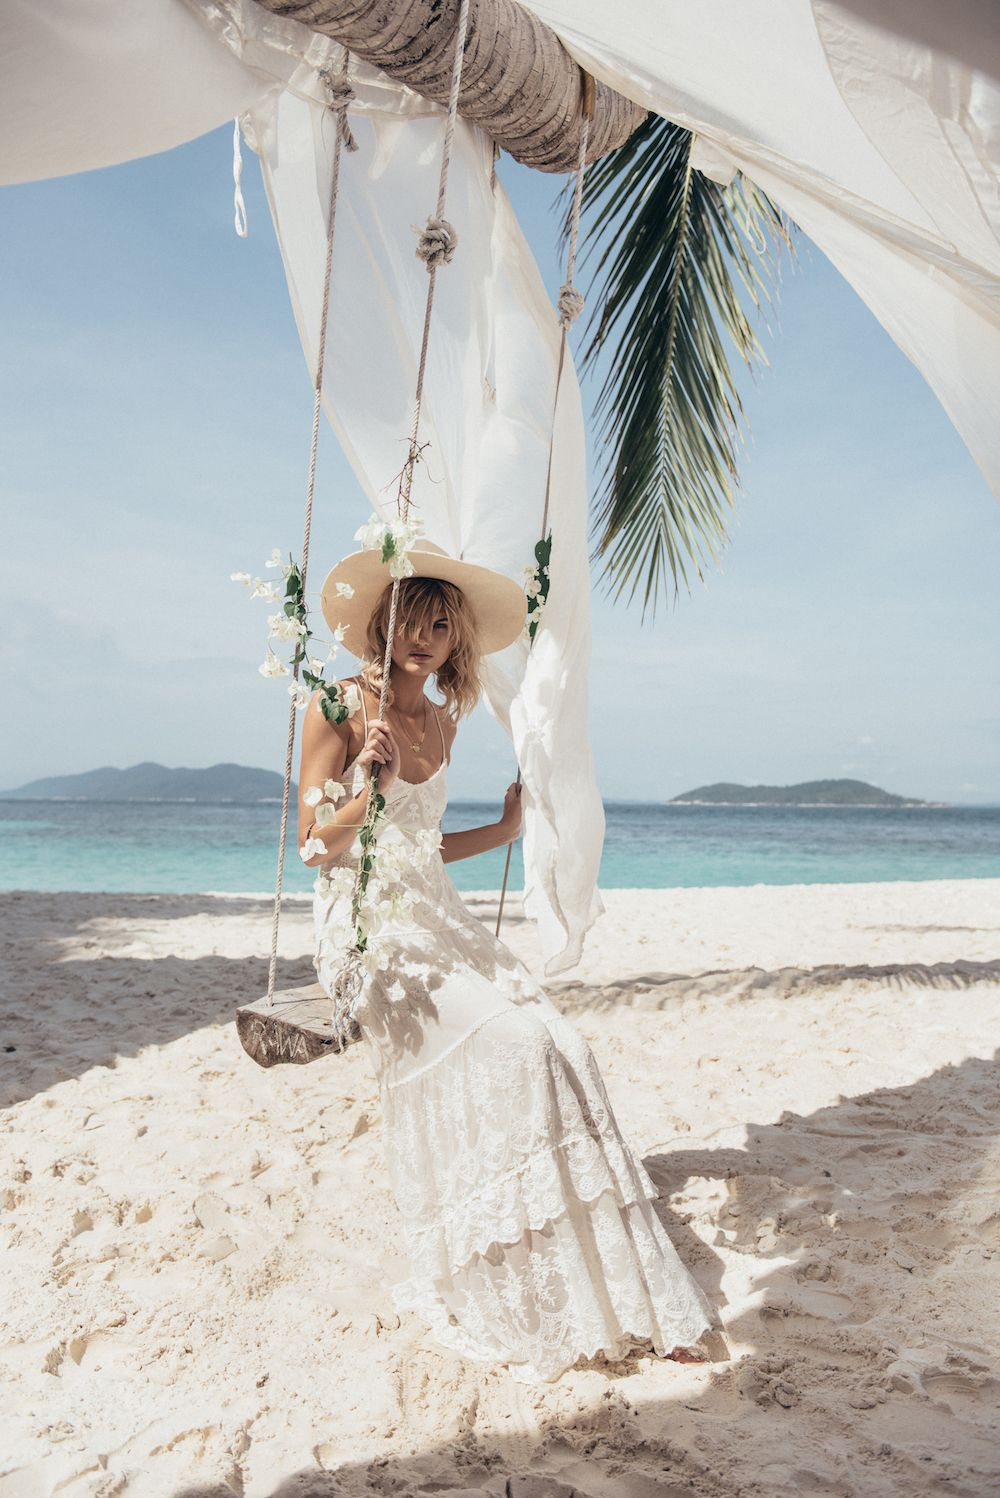 Boho wedding dresses for Boho beach Brides from Spell Bride